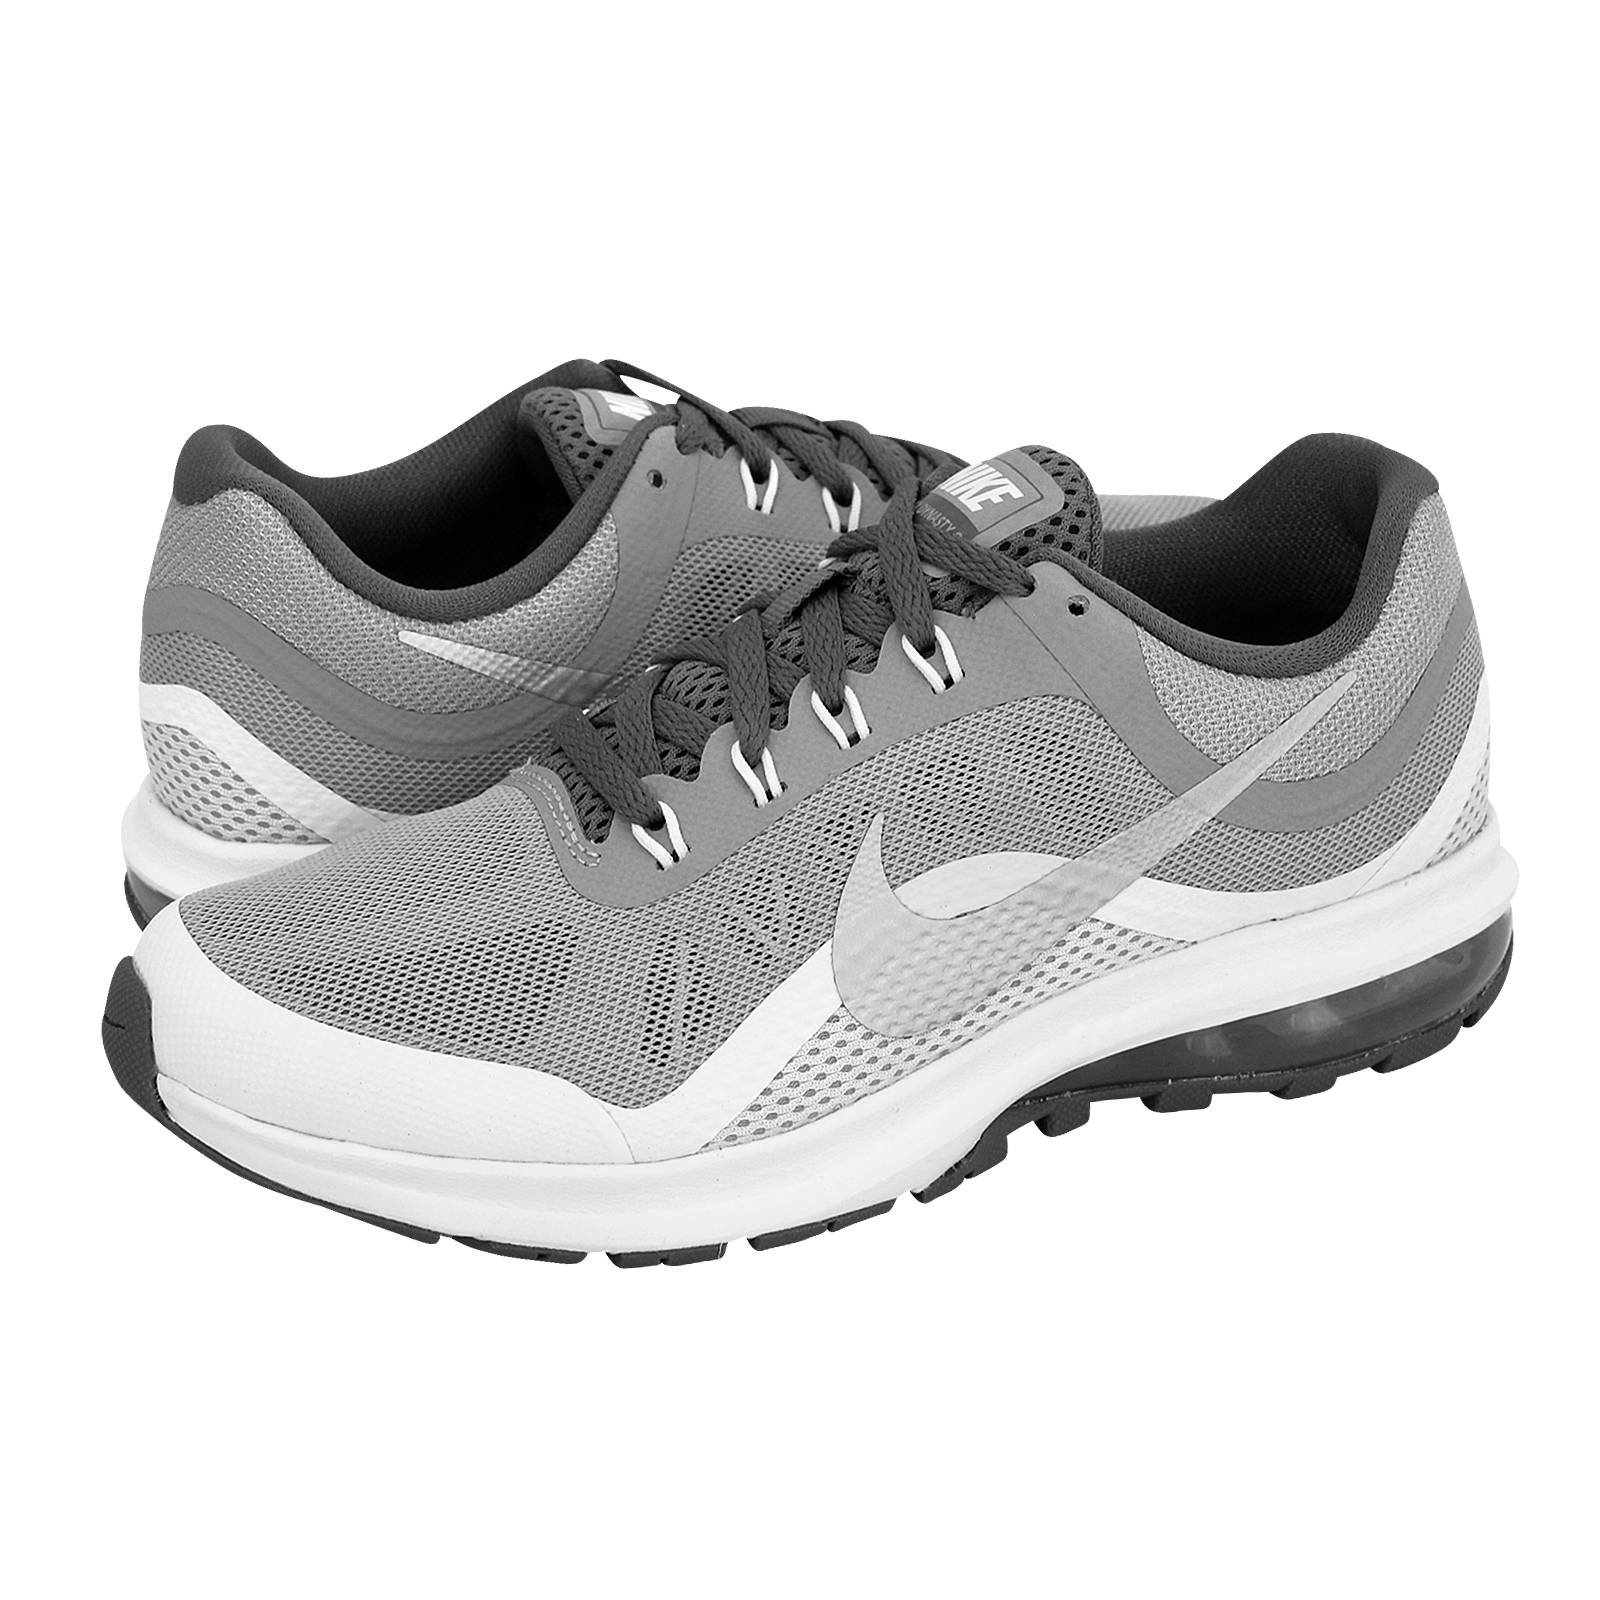 1d97842c912 Air Max Dynasty 2 - Nike Women s athletic shoes made of fabric and ...